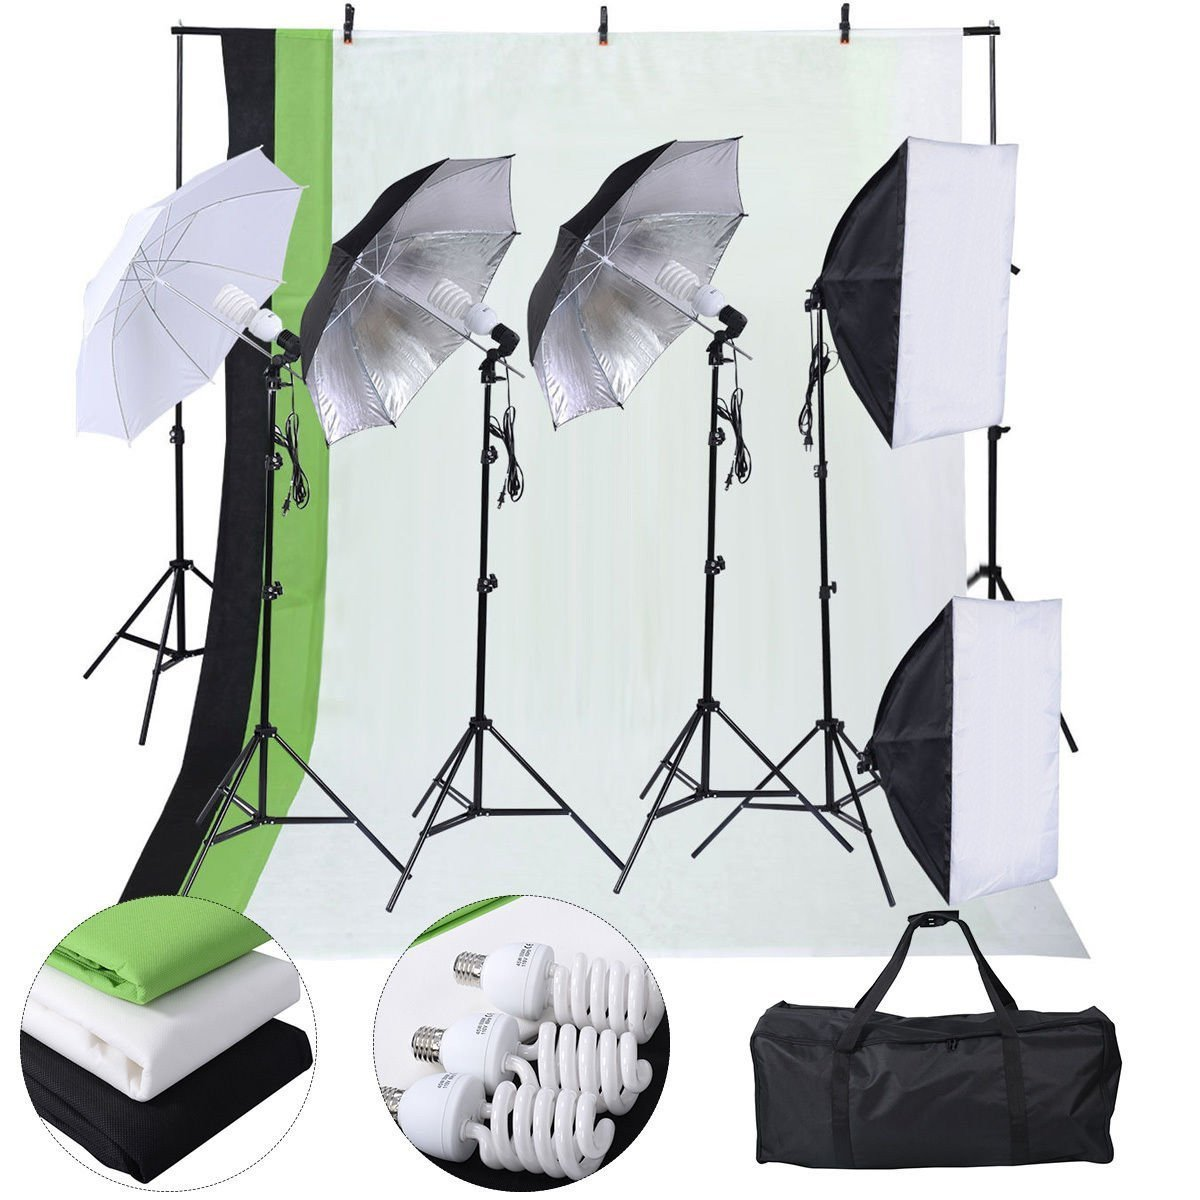 Safstar Photography Lighting Kits for Beginners, Includes Chromakey Studio Background Stand, 3 x Backdrops (Green Black White), 3 x Umbrellas Kits, 2 x Softboxs Kits, 3 x Clamps, 2 x Carry Bags by S AFSTAR